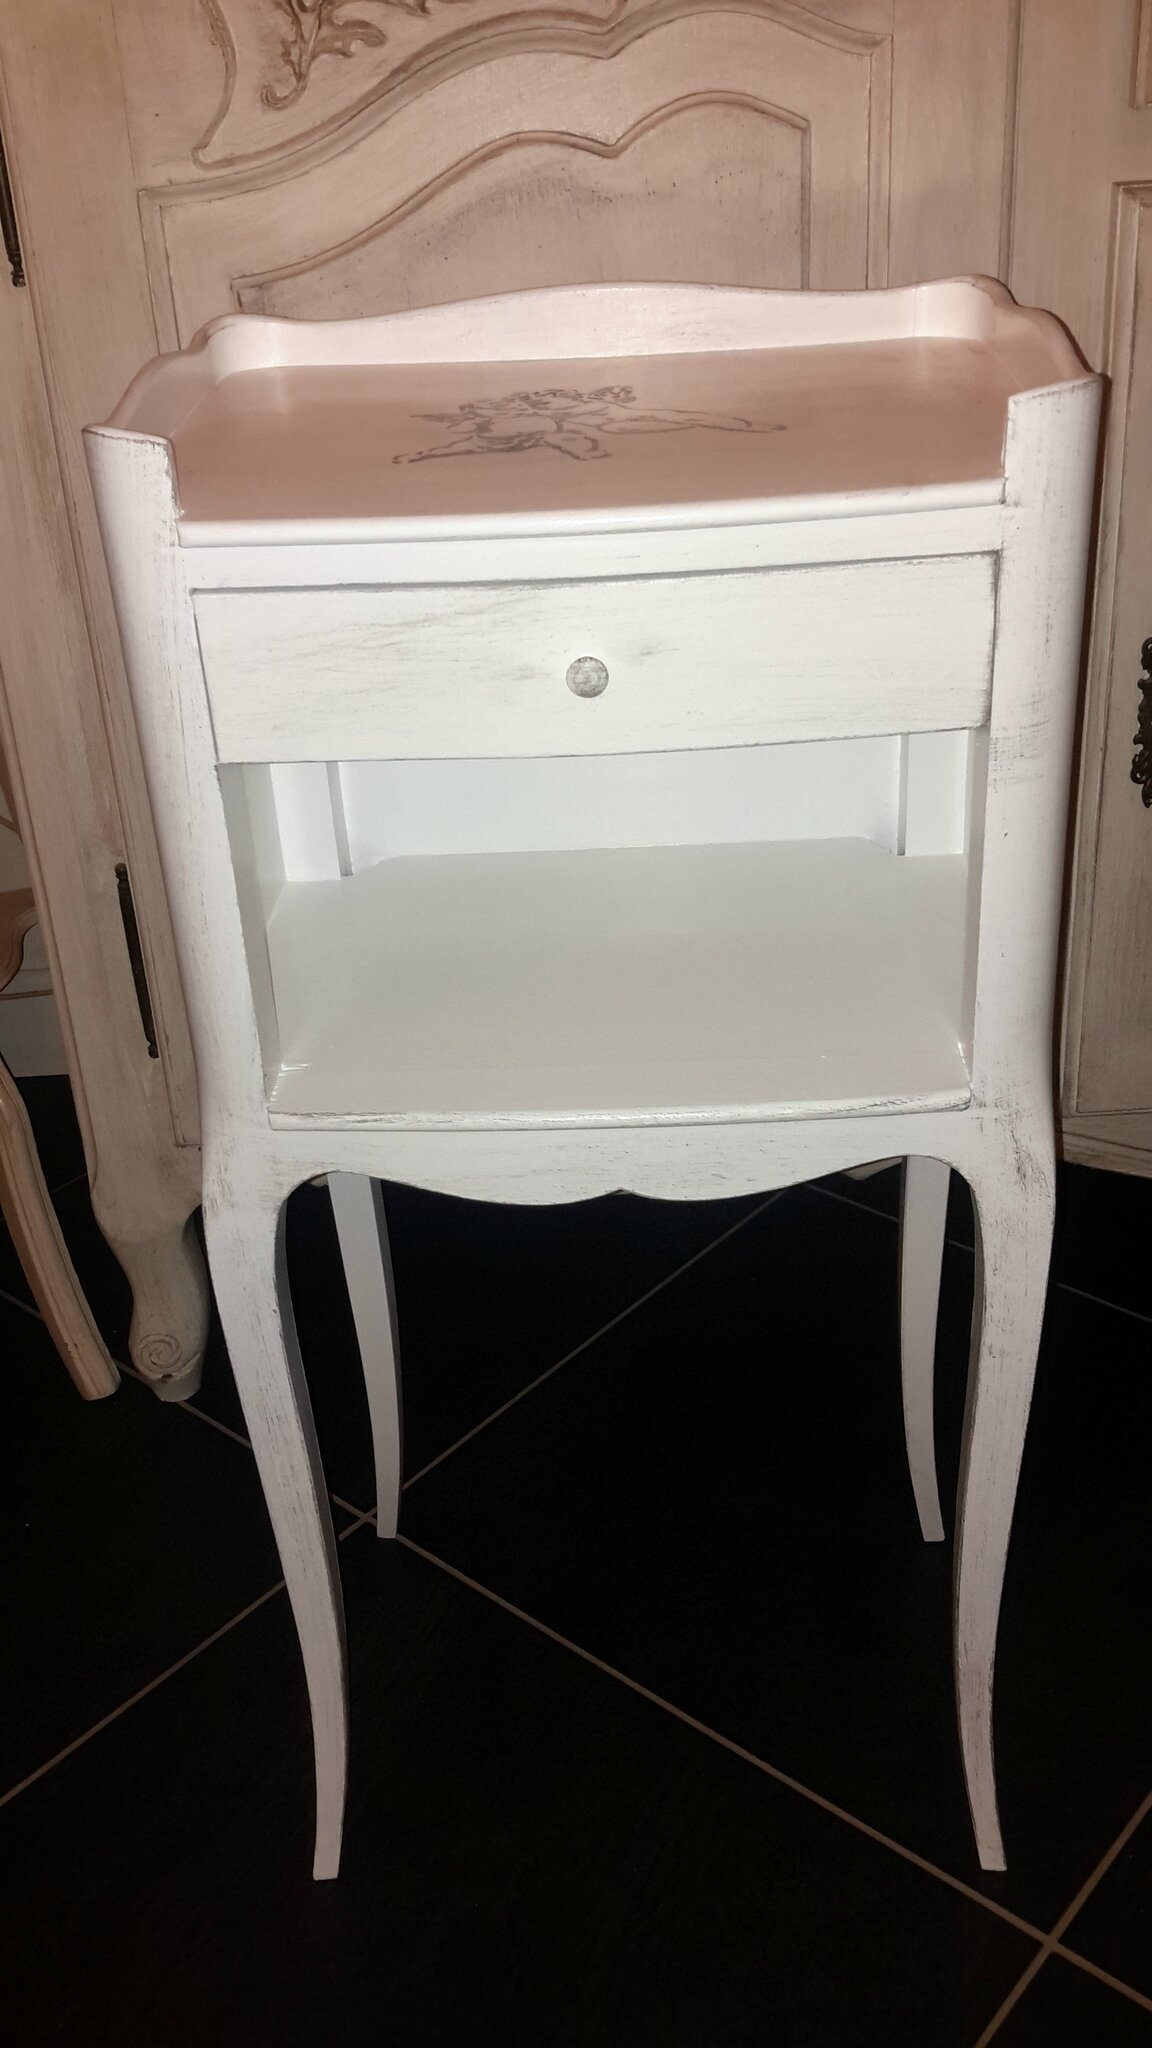 meubles patin s esprit shabby chic campagne chic atelier guernouillat. Black Bedroom Furniture Sets. Home Design Ideas